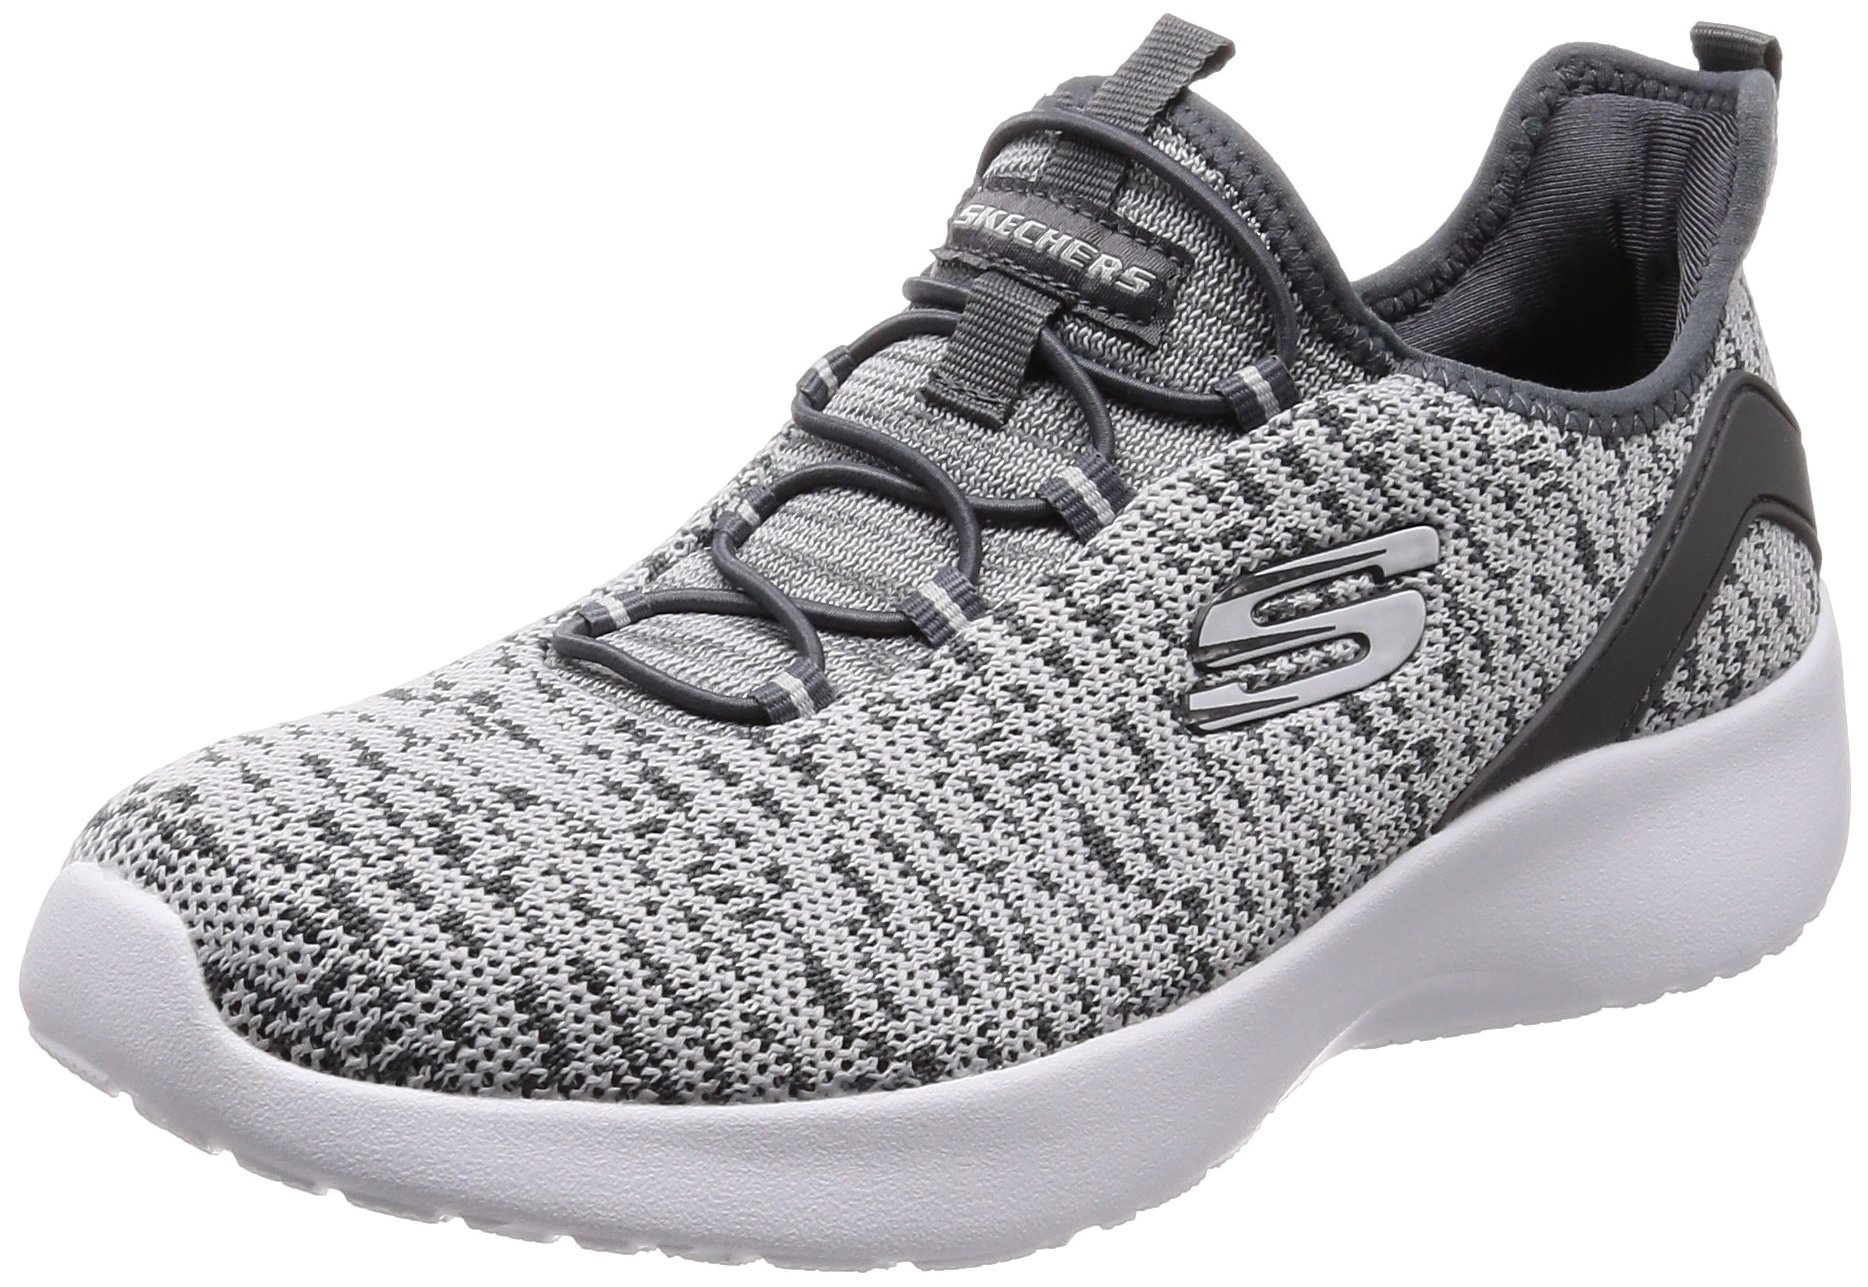 Skechers Women's Dynamight - Fleetly Gray Ankle-High Running Shoe 9M